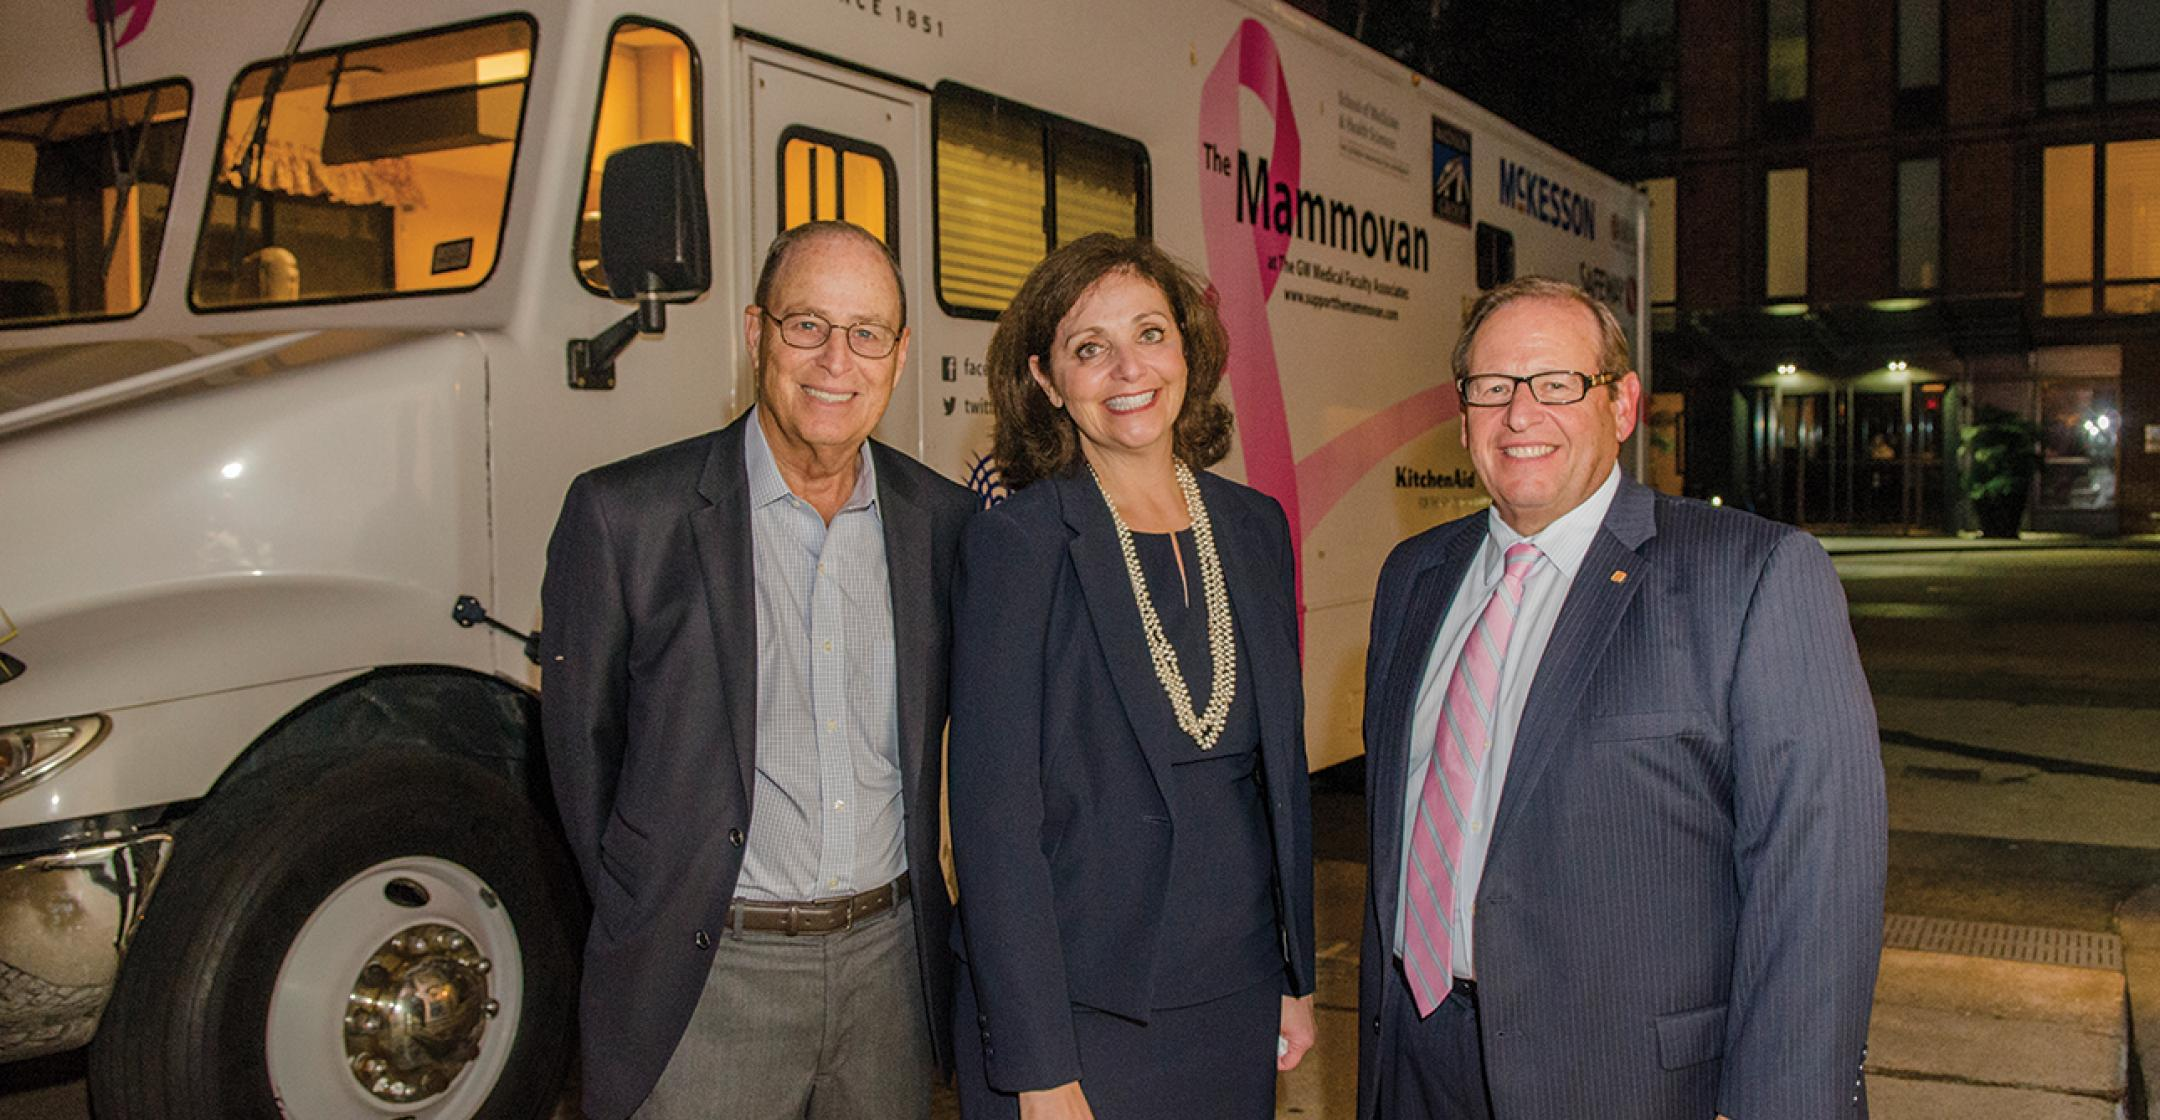 A NEW MAMMOVAN - Representatives from the EagleBank Foundation presented the GW Cancer Center and the George Washington Medical Faculty Associates with the gift of $750,000 for a new mobile mammography unit.